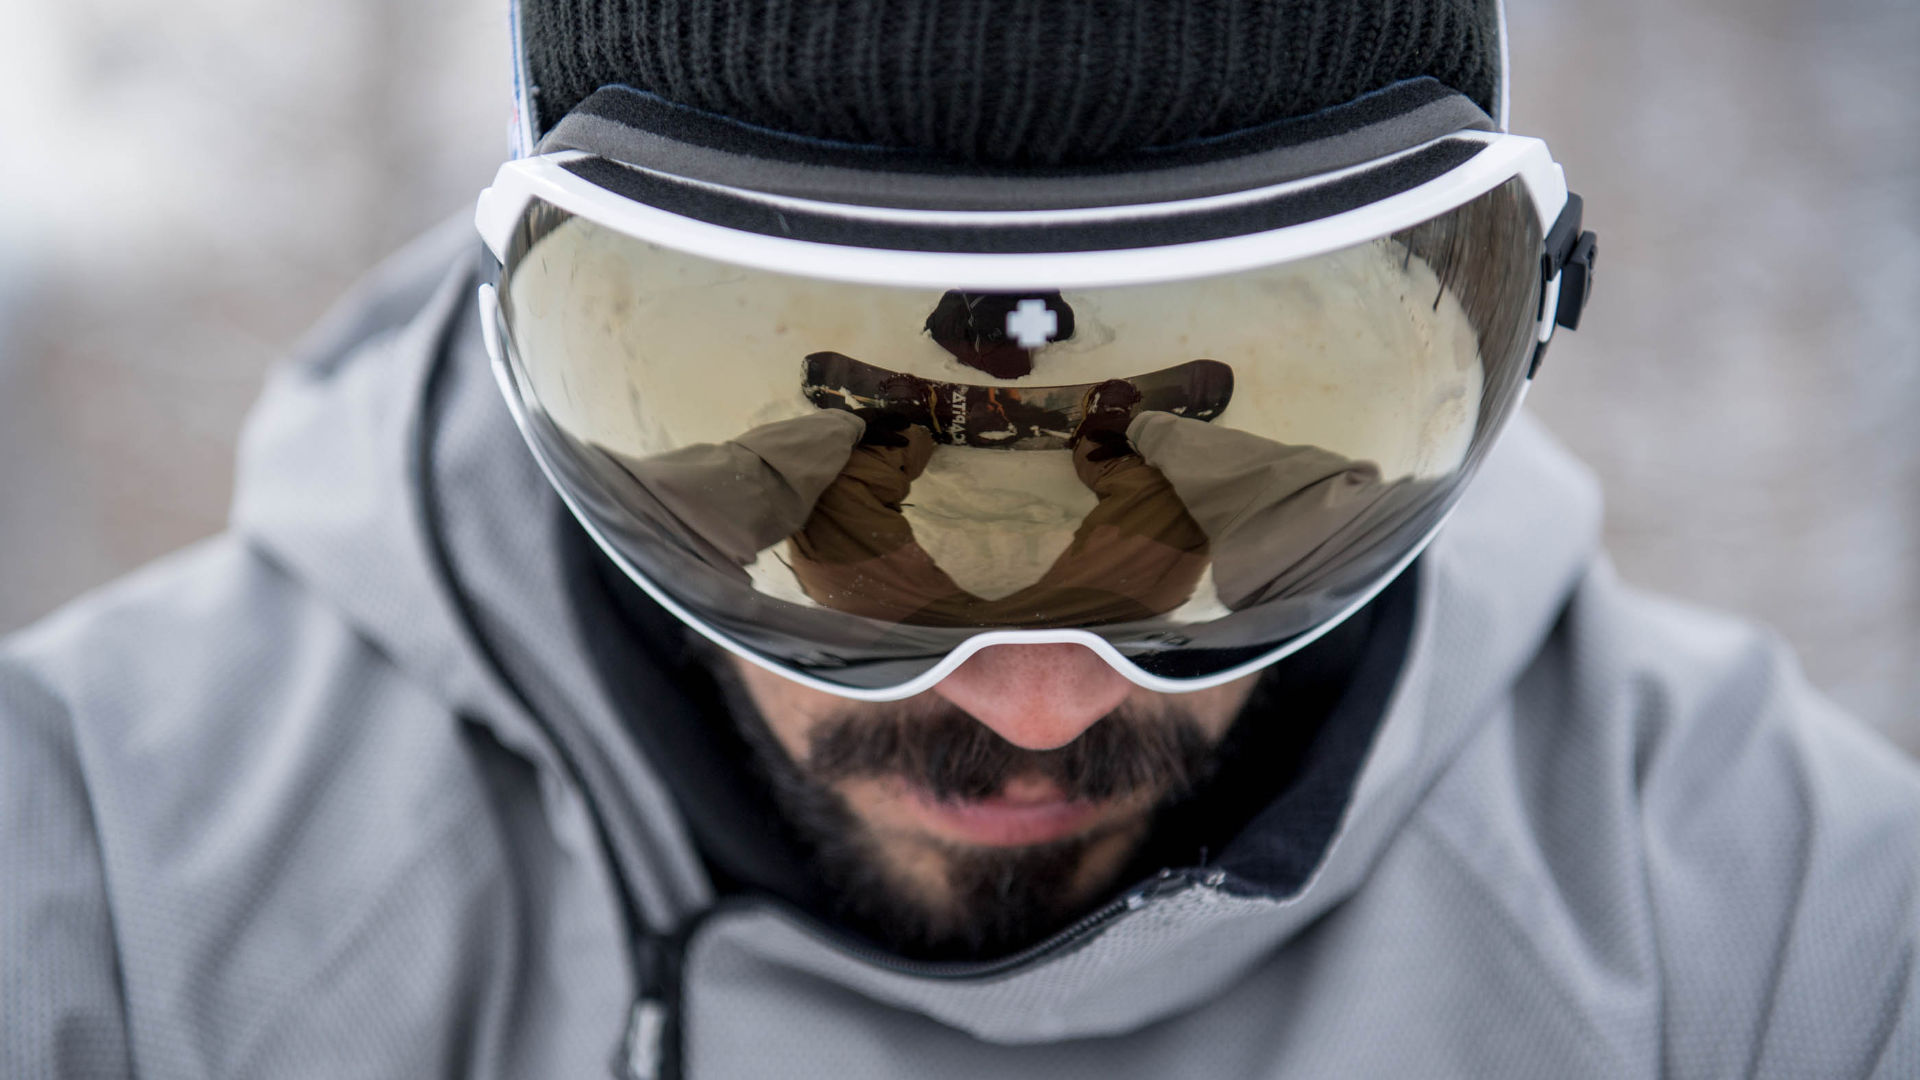 Goggle with a spherical lens from SPY